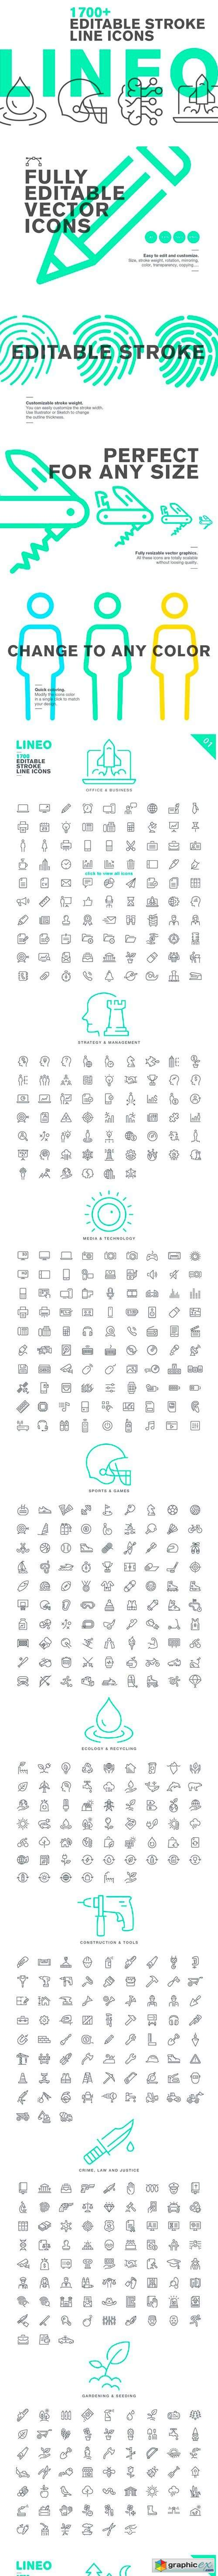 LINEO - 1700+ fully editable icons